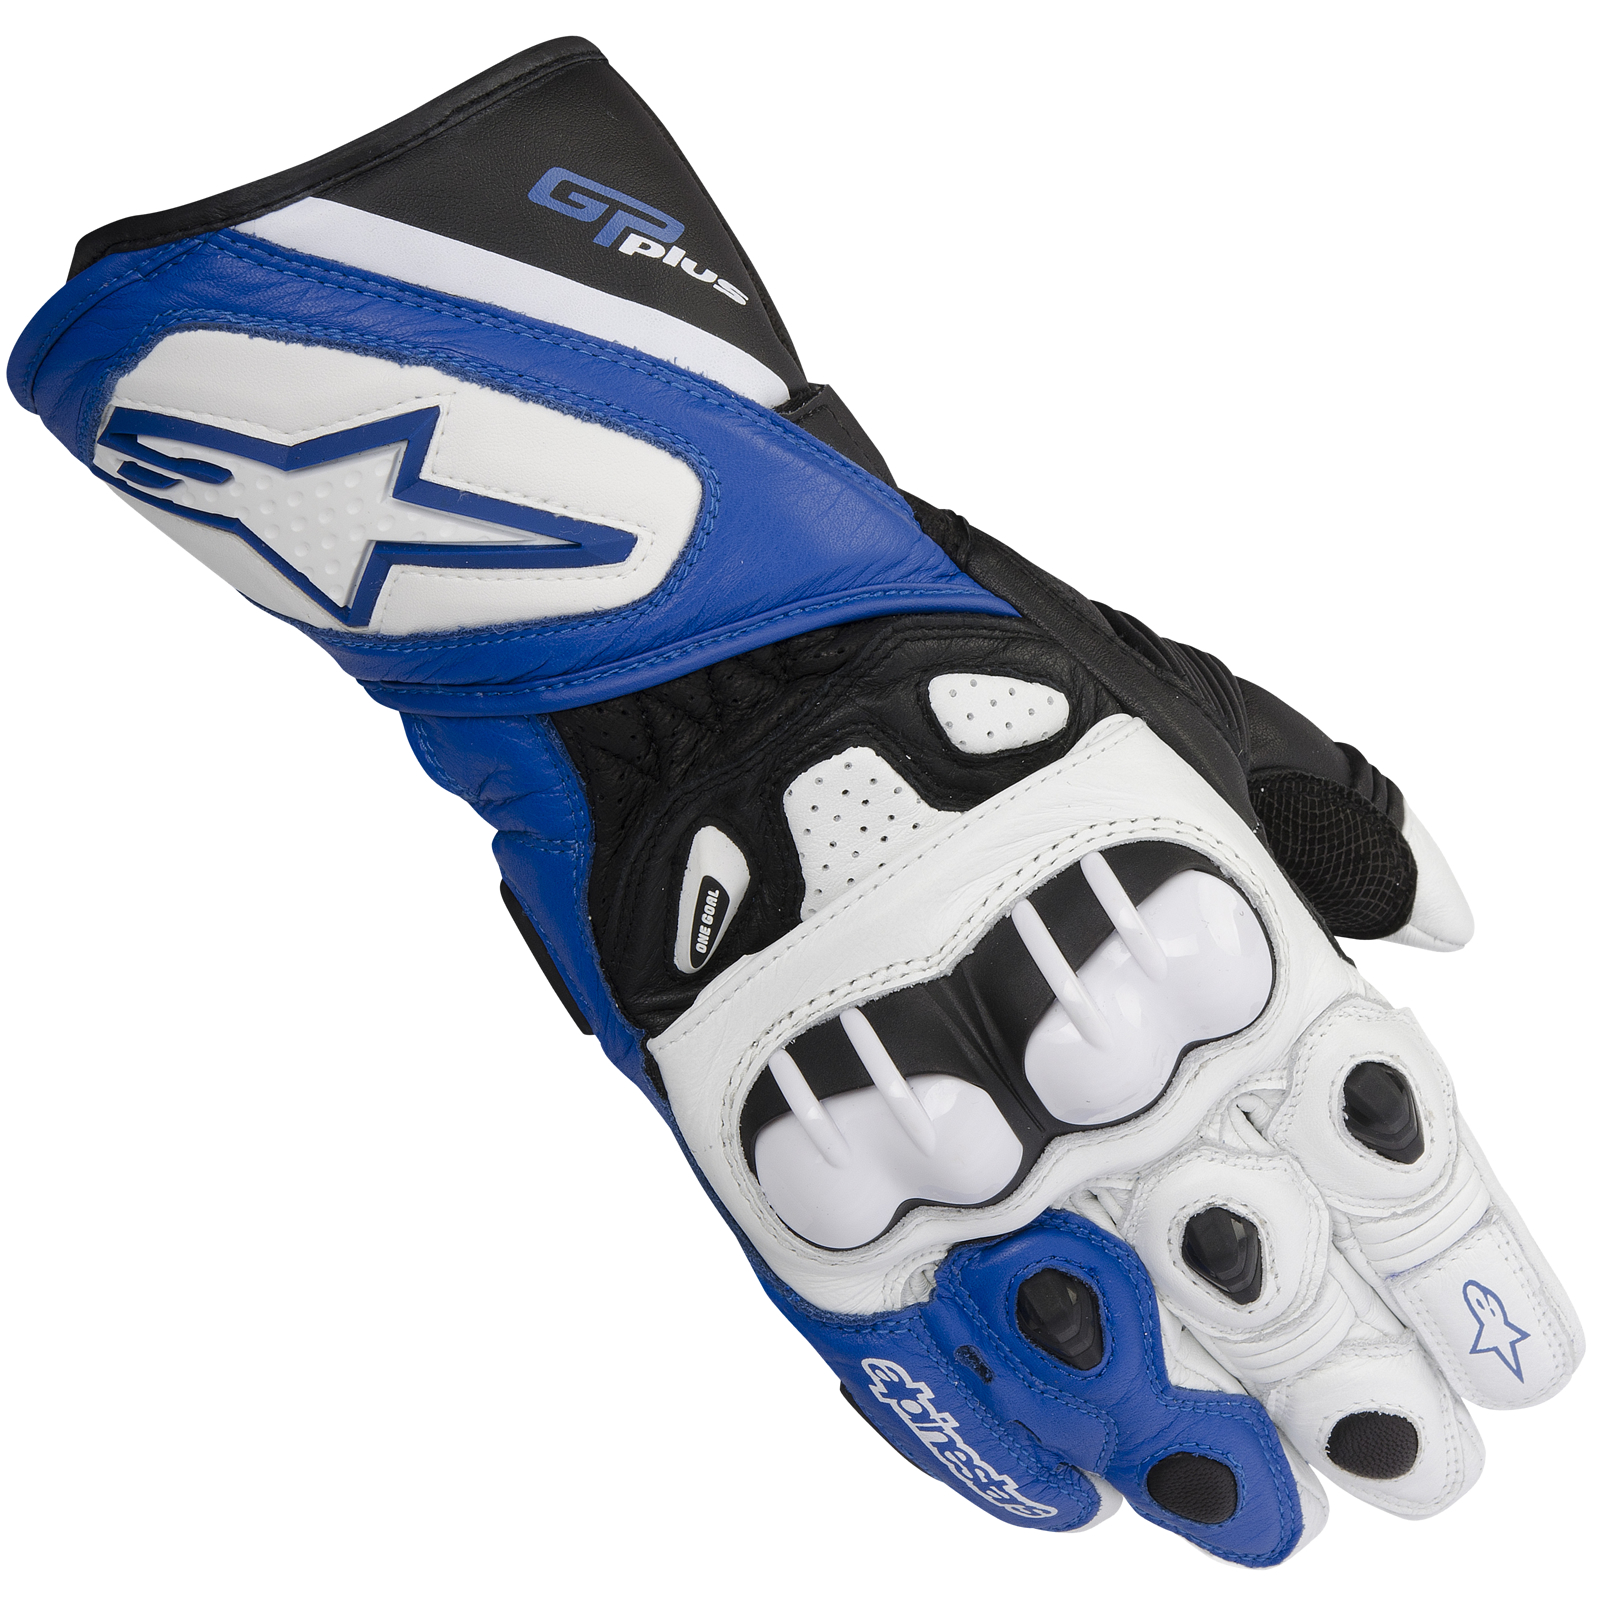 Alpinestar Motorcycle Gloves >> White And Blue Motorcycle Gloves | Review About Motors